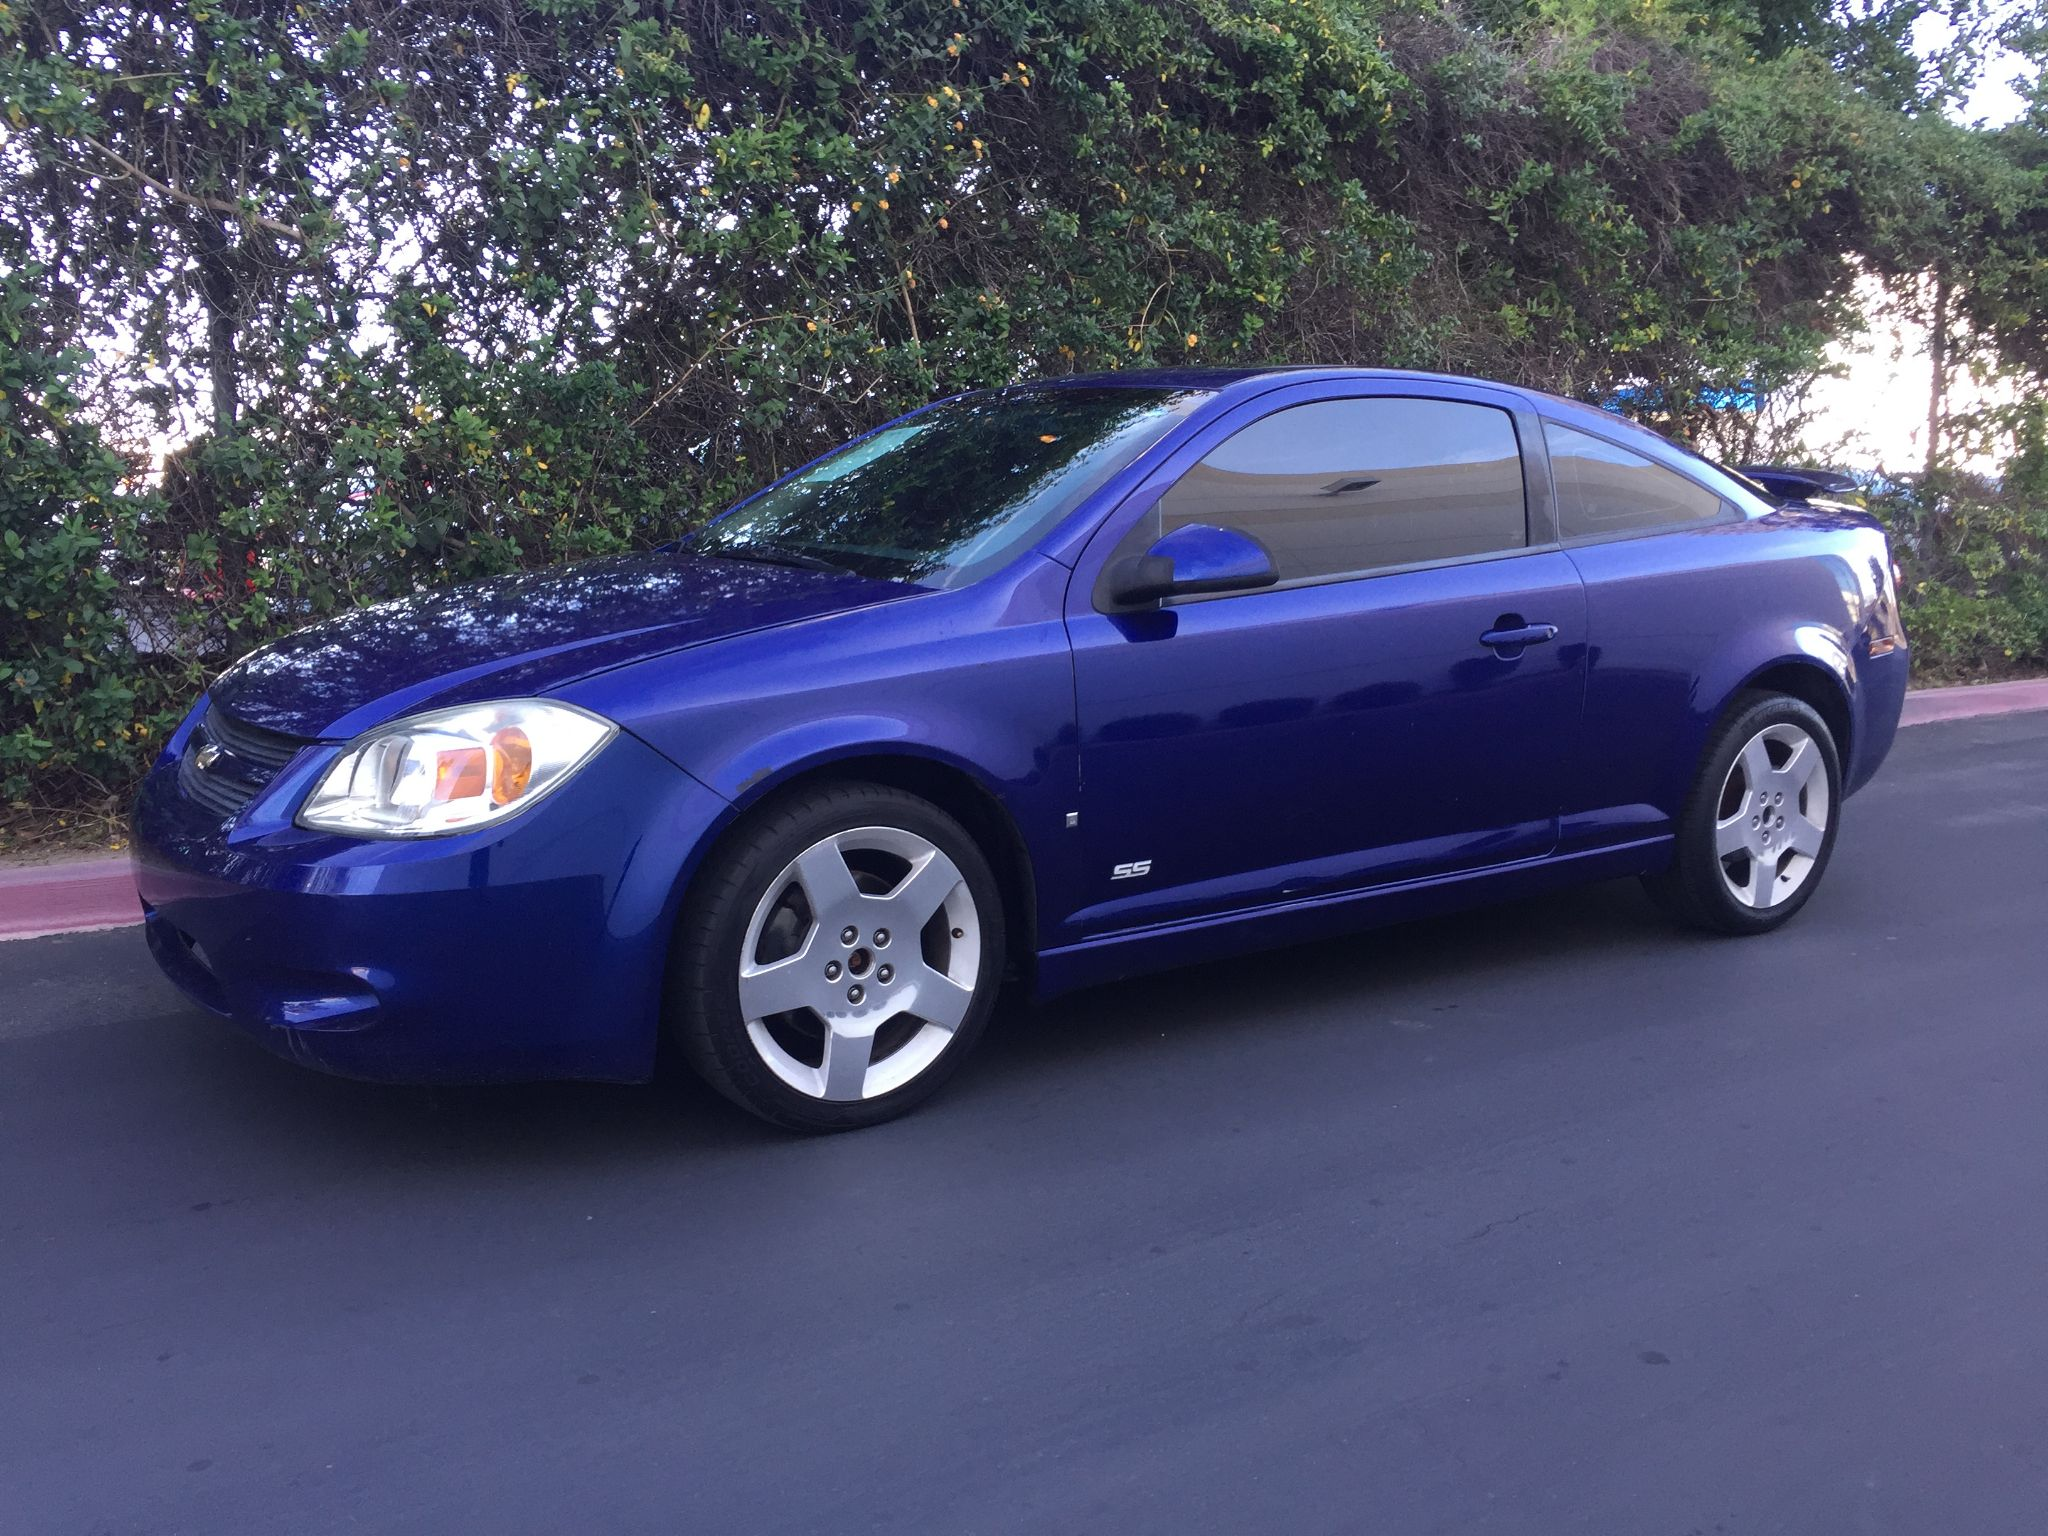 Used 2006 Chevrolet Cobalt SS at City Cars Warehouse INC